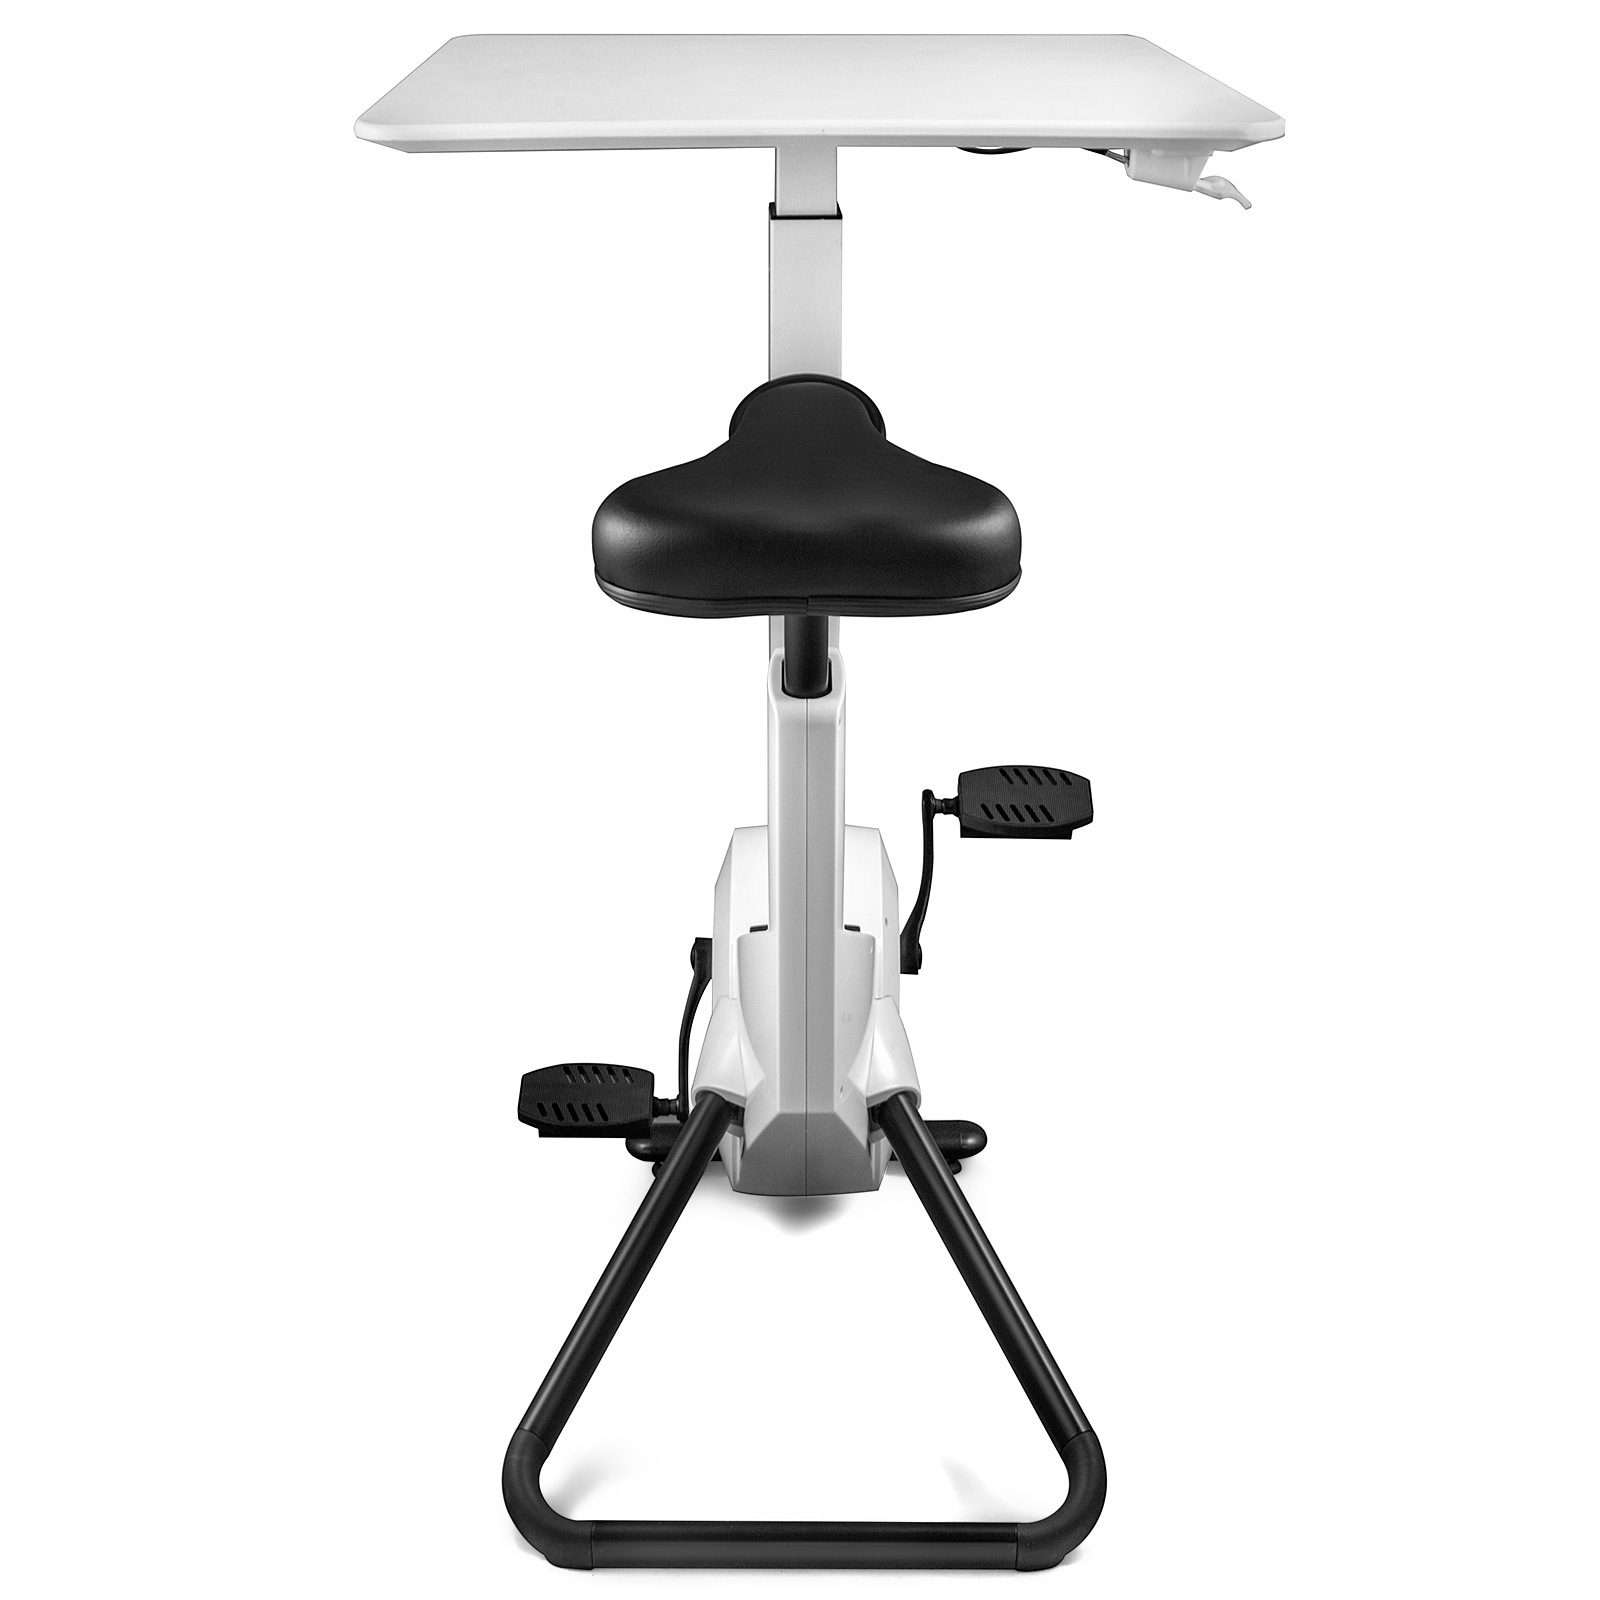 Multi-style-Magnetic-Exercise-Bike-office-Bicycle-under-Desk-Fitness-Cardio miniature 117